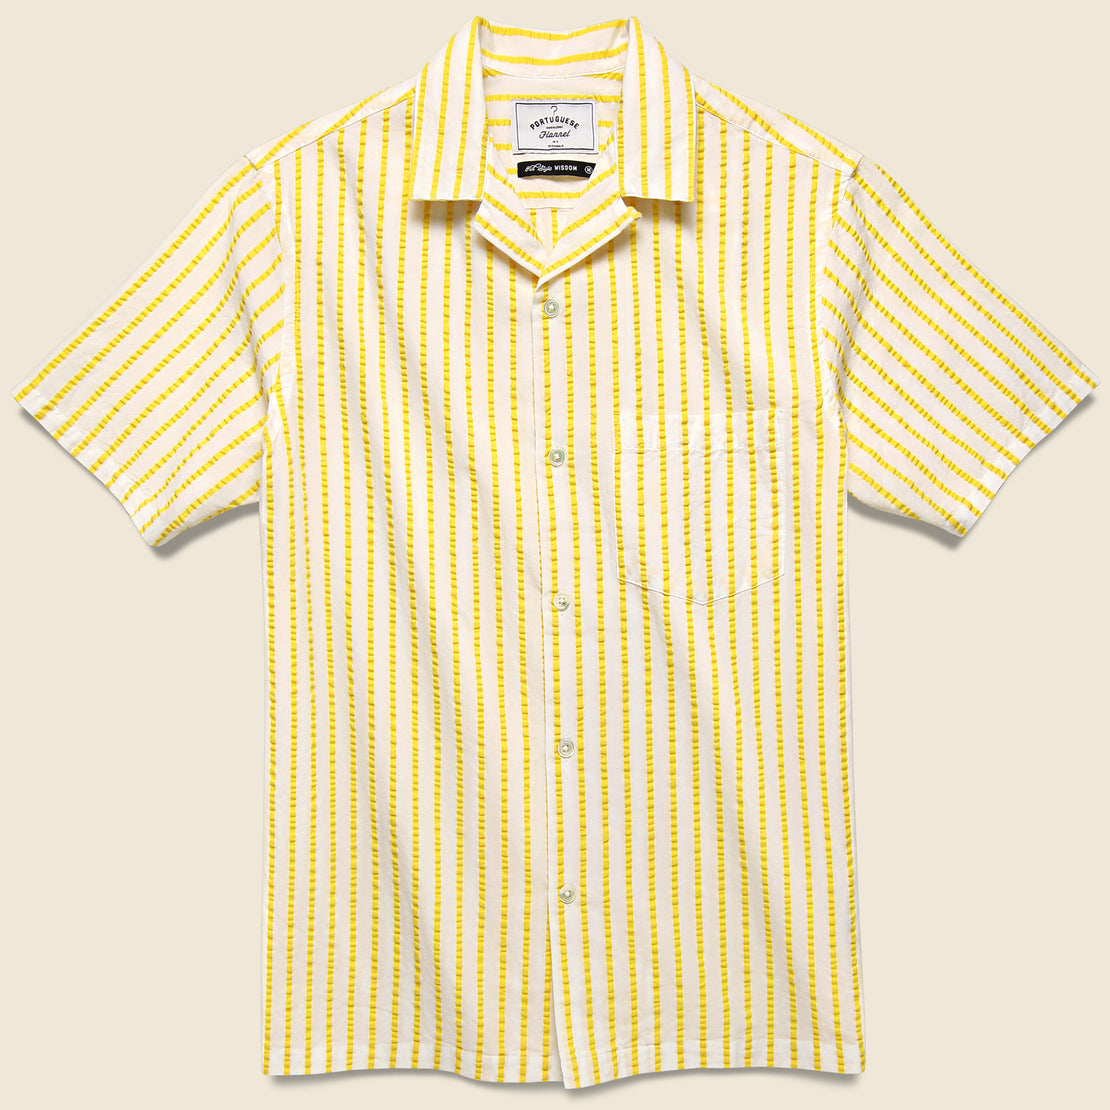 Portuguese Flannel Rayures Camp Shirt - White/Yellow